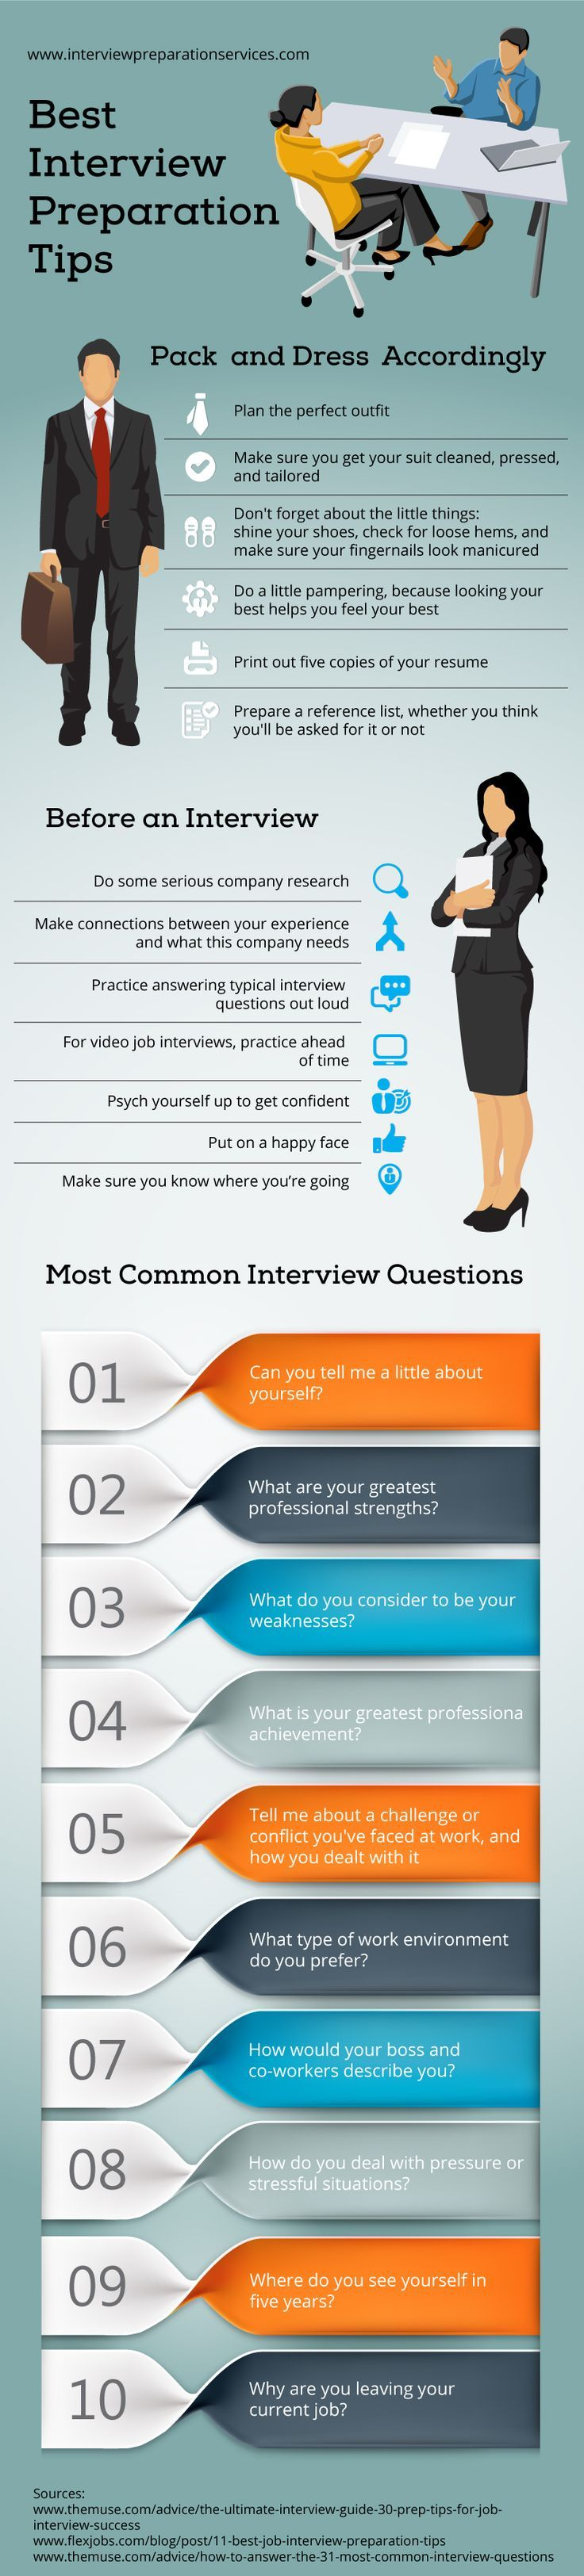 Find out more JOB INTERVIEW tips on